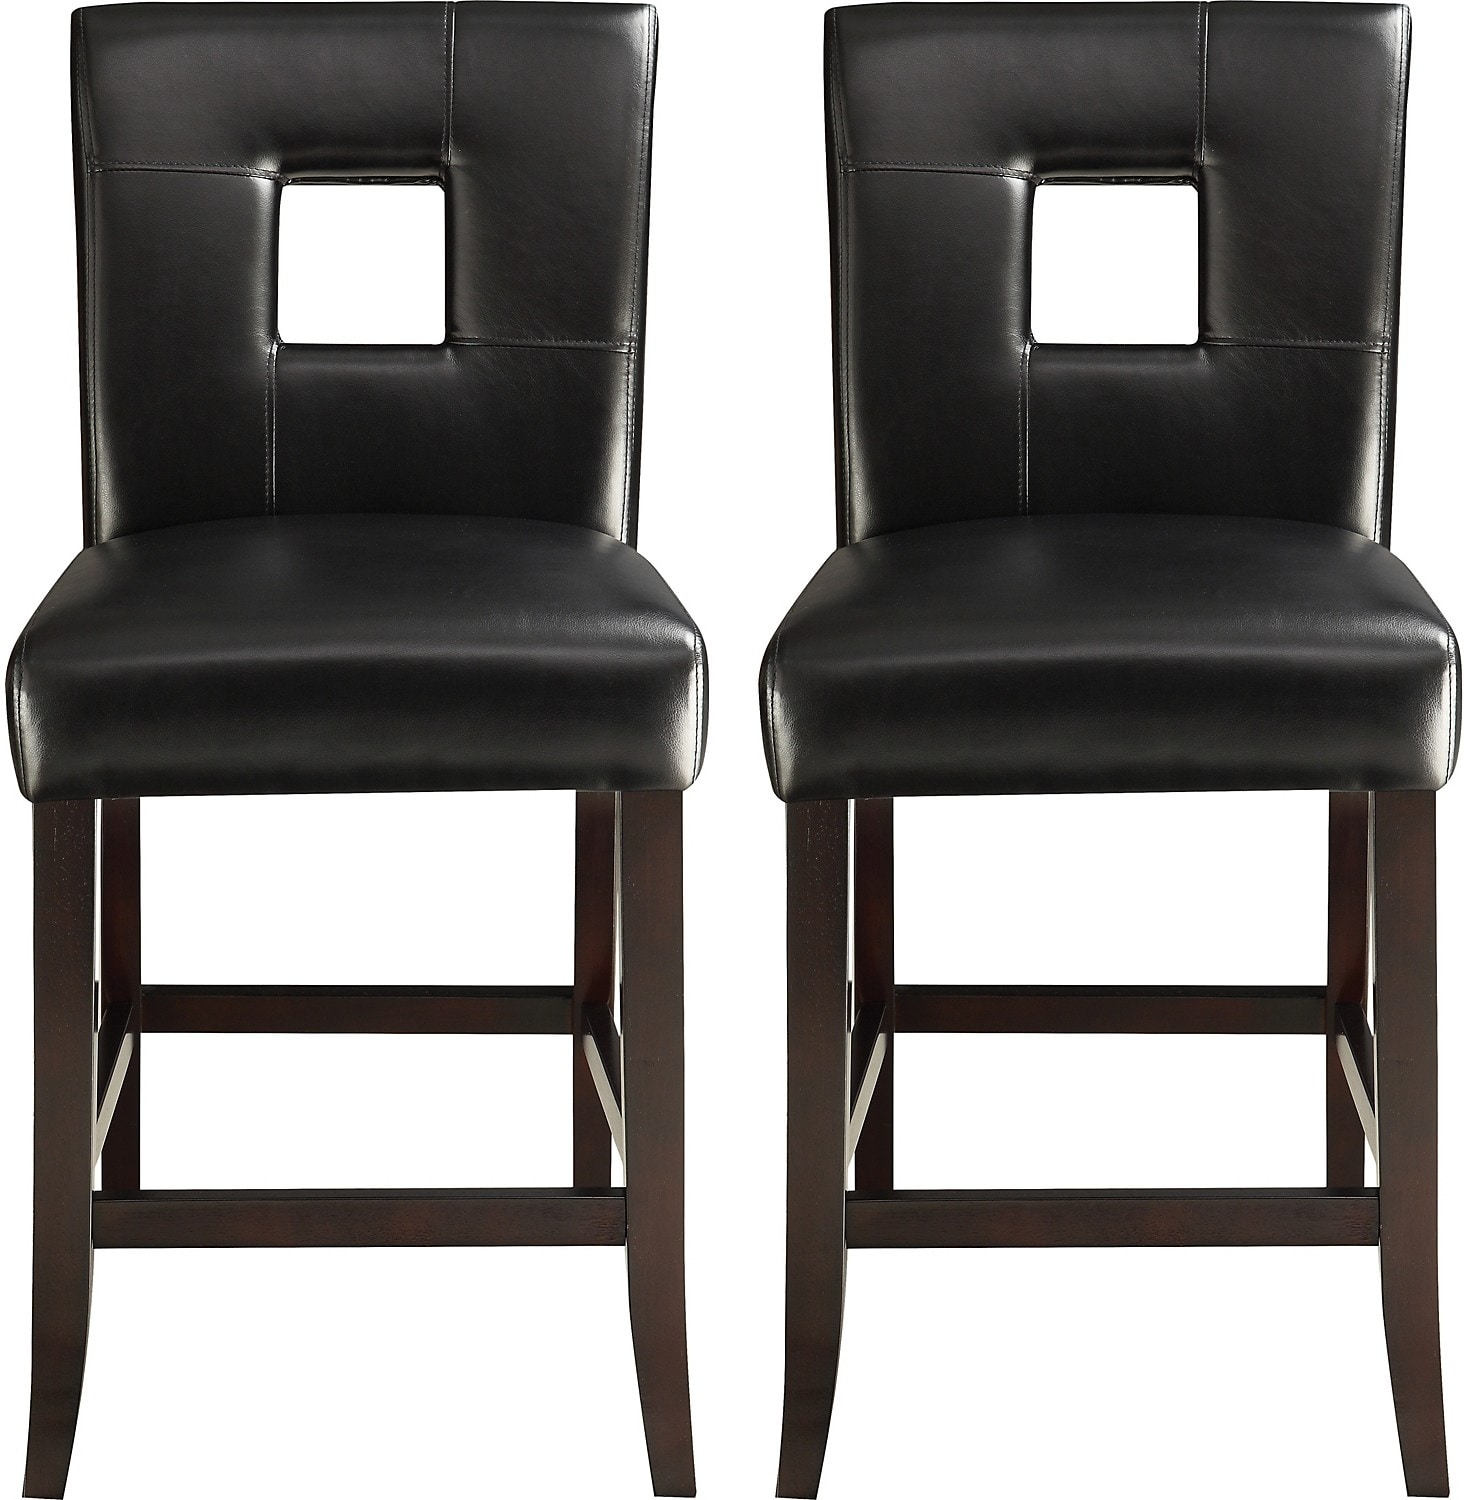 McKenna 2-Piece Counter-Height Dining Chair Package – Black